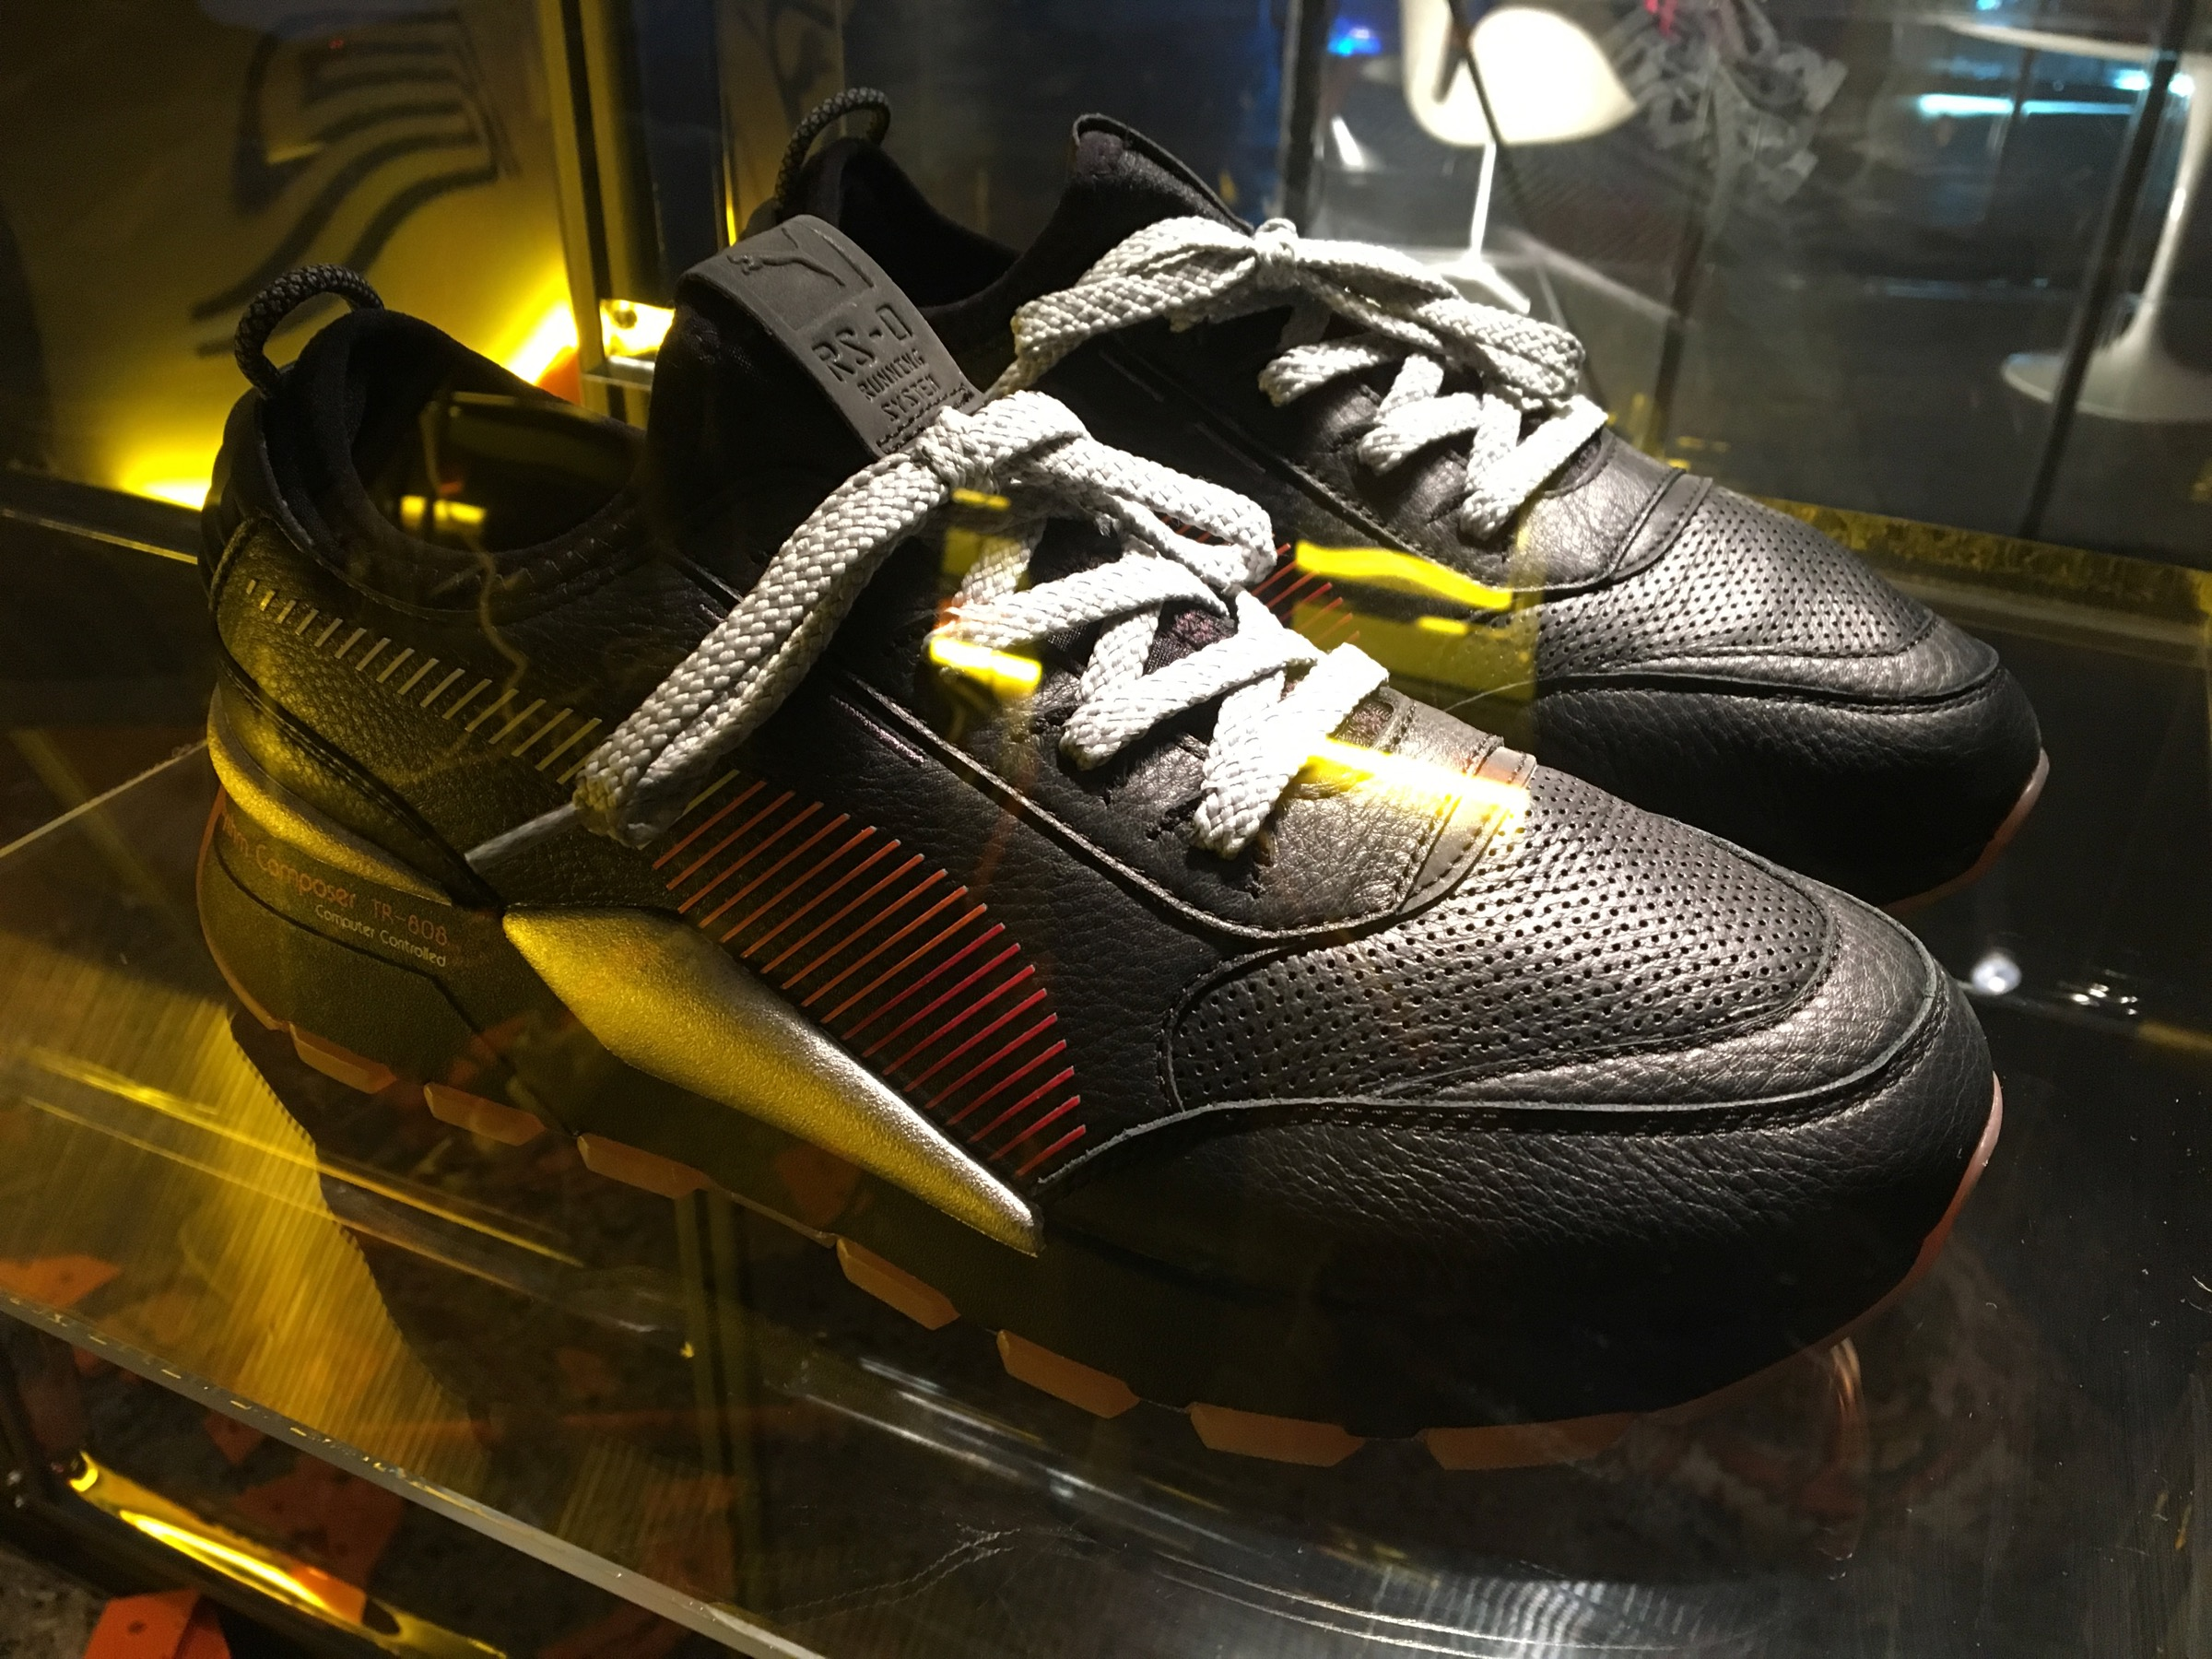 The Roland TR 808 is getting its own pair of Puma shoes